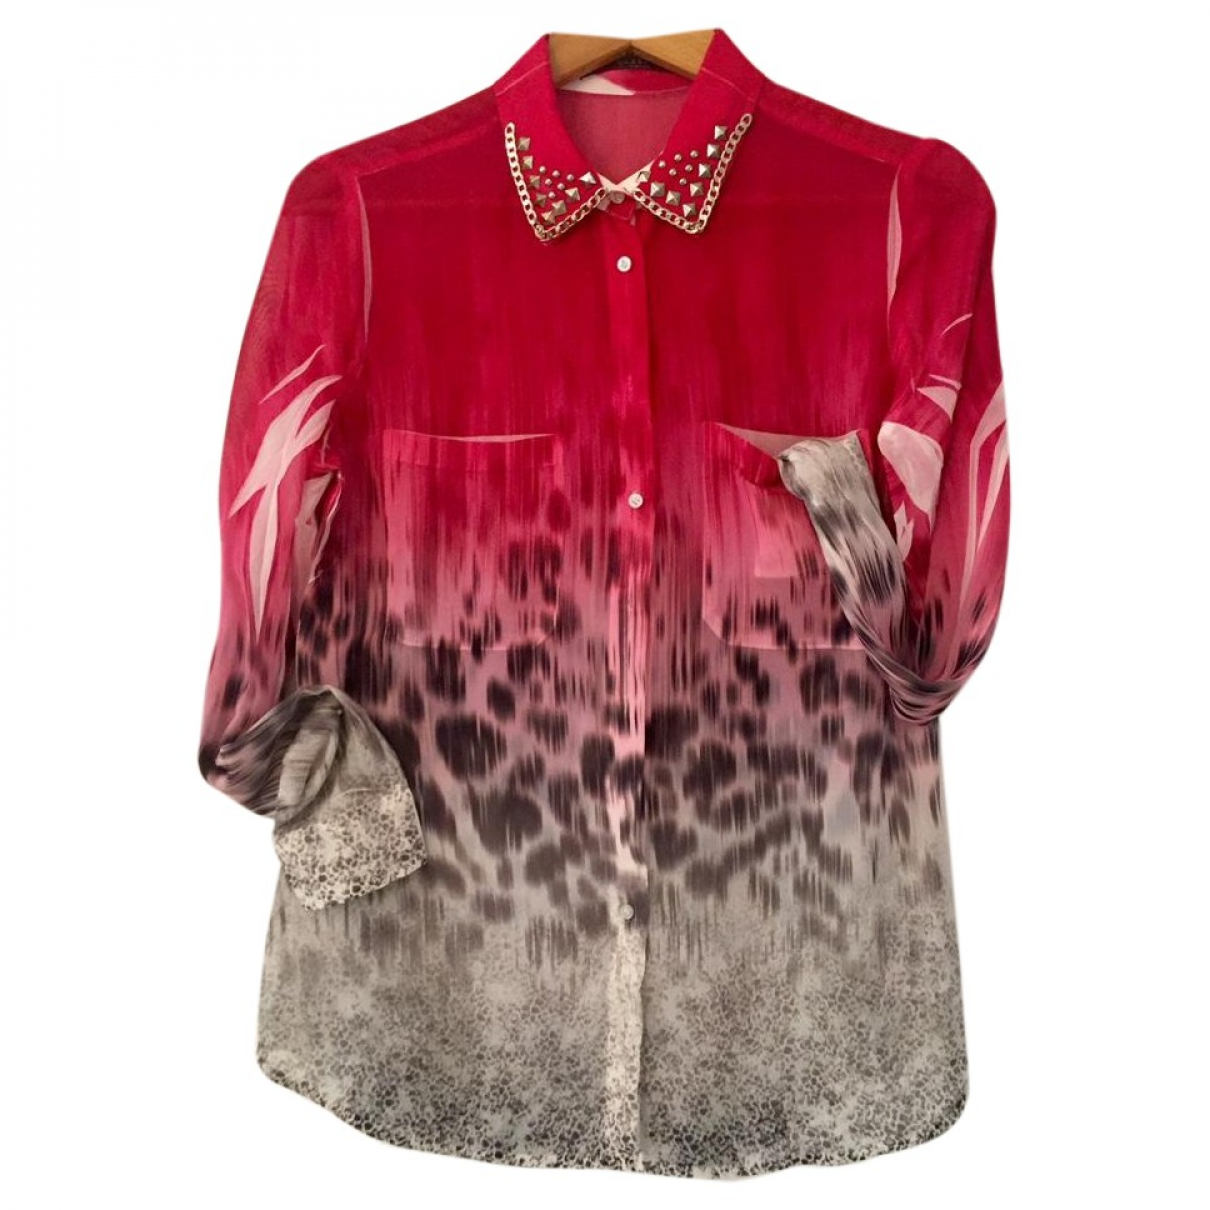 Guess \N Red Cotton  top for Women 36 FR